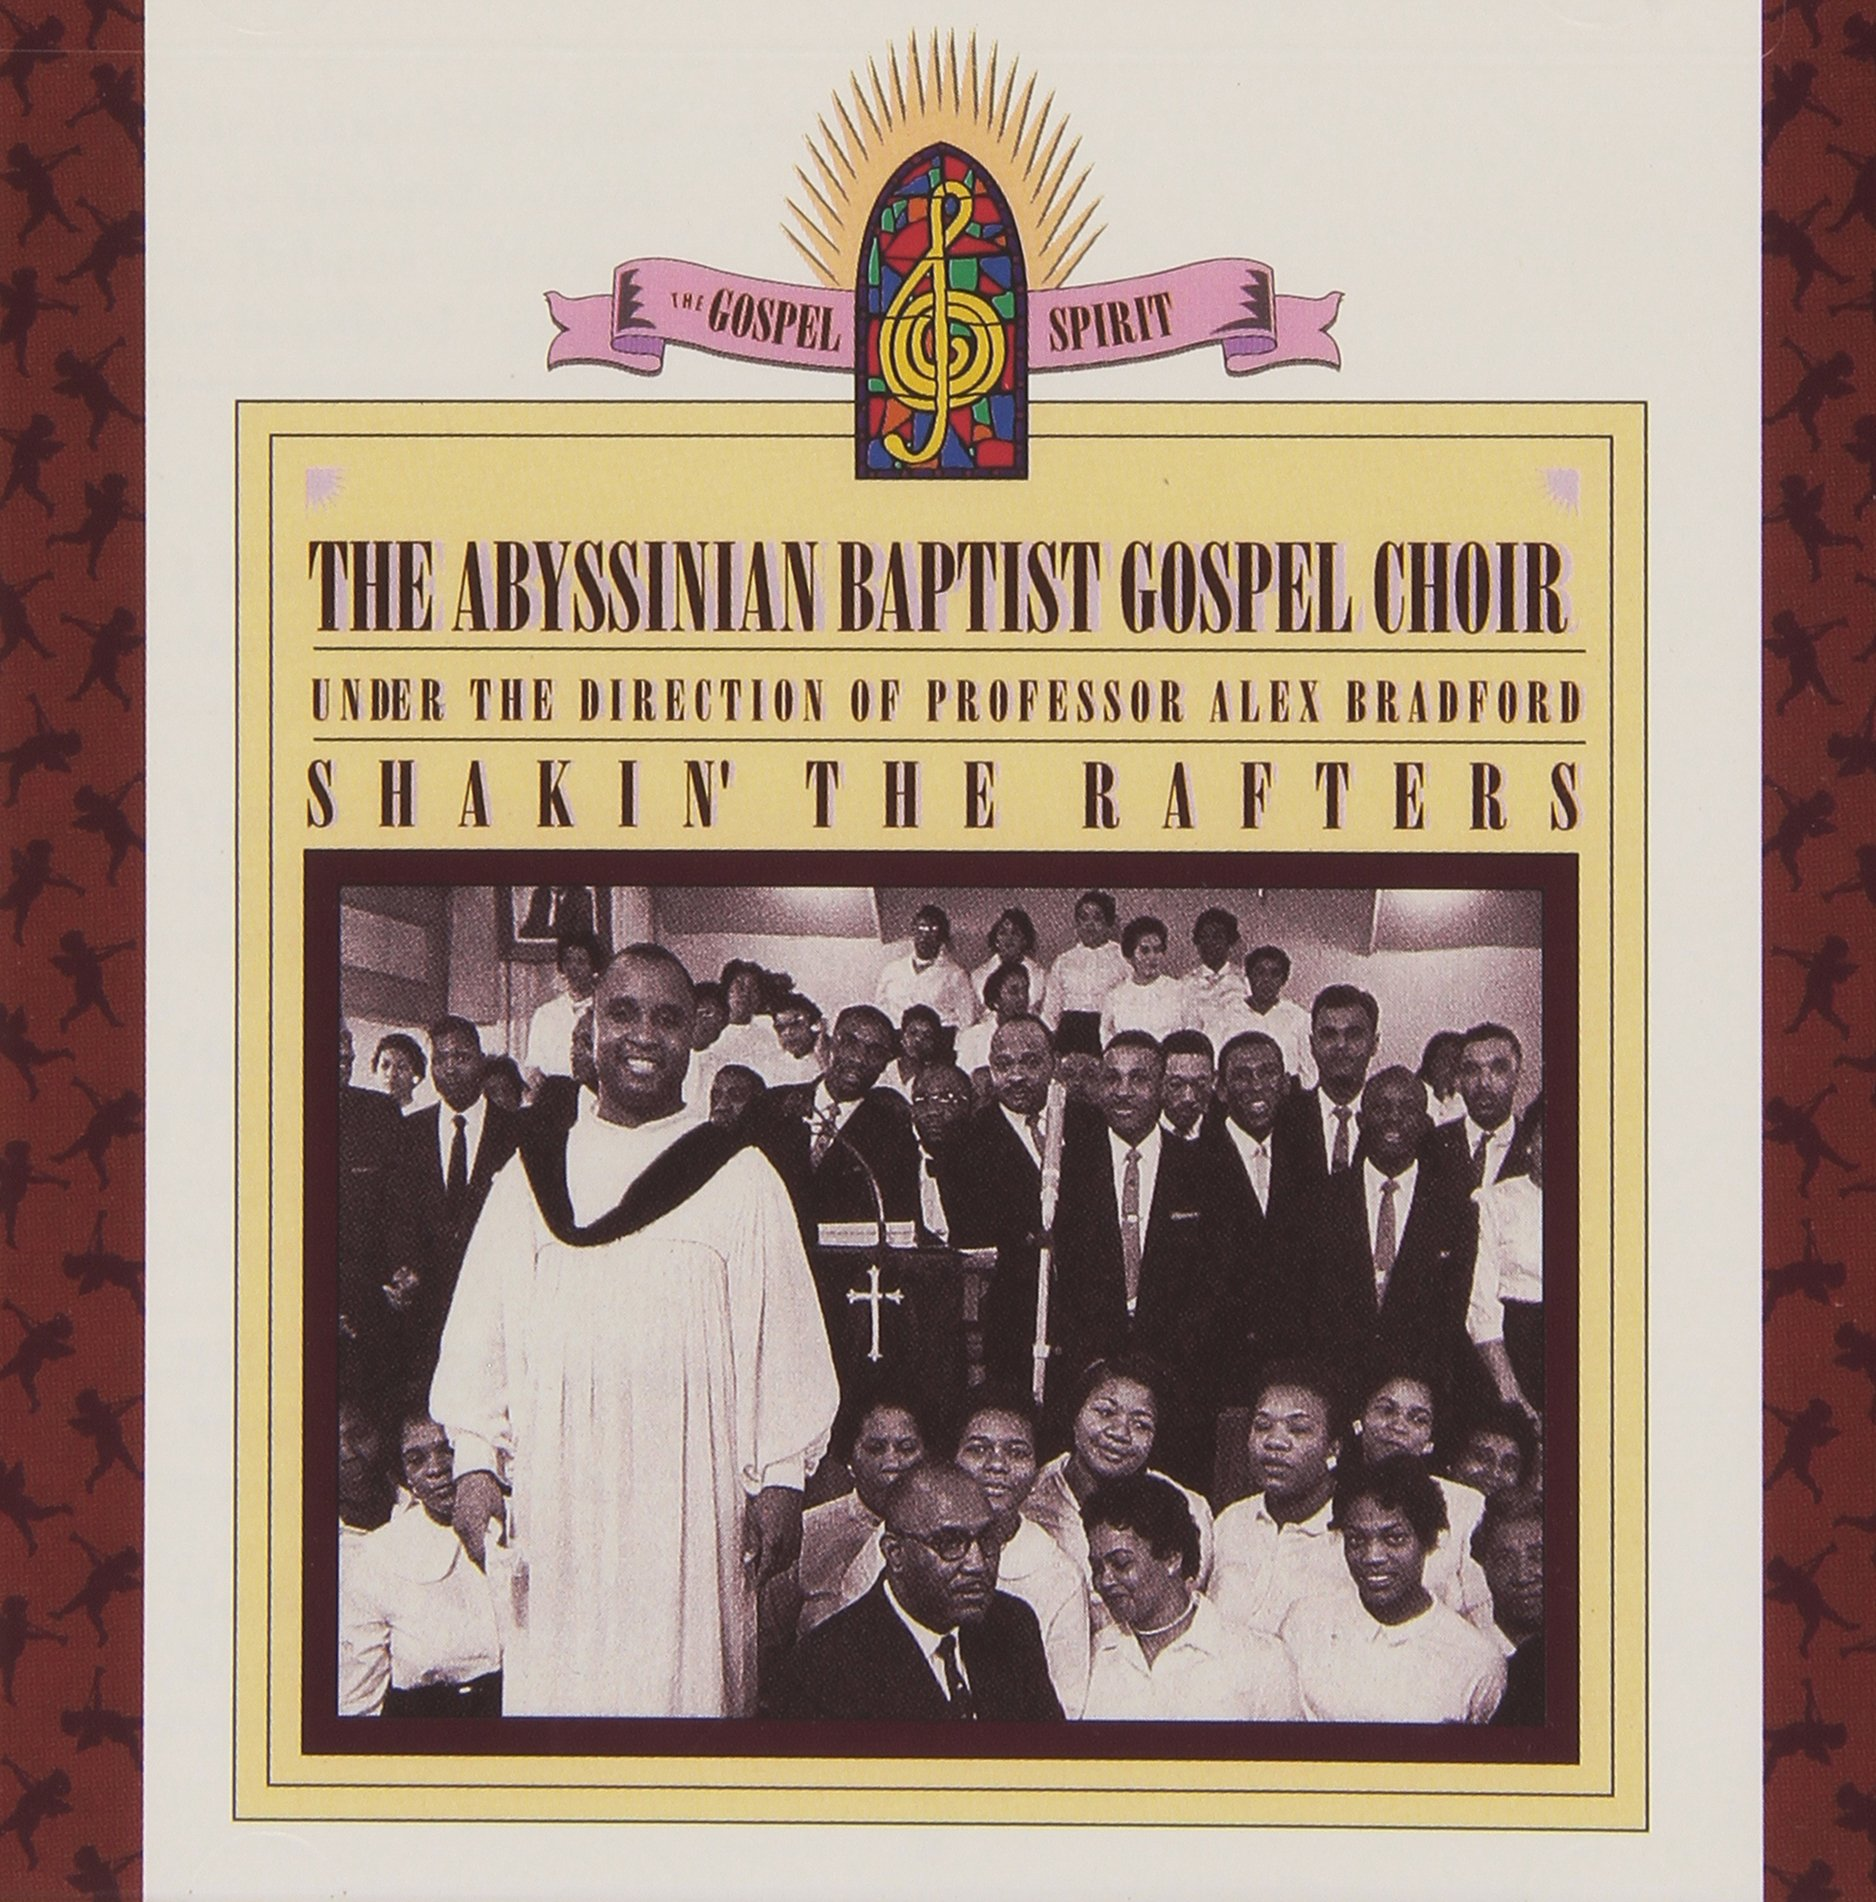 Shakin' The Rafters: Abyssinian Baptist Gospel Choir Under The Direction of Professor Alex Bradford